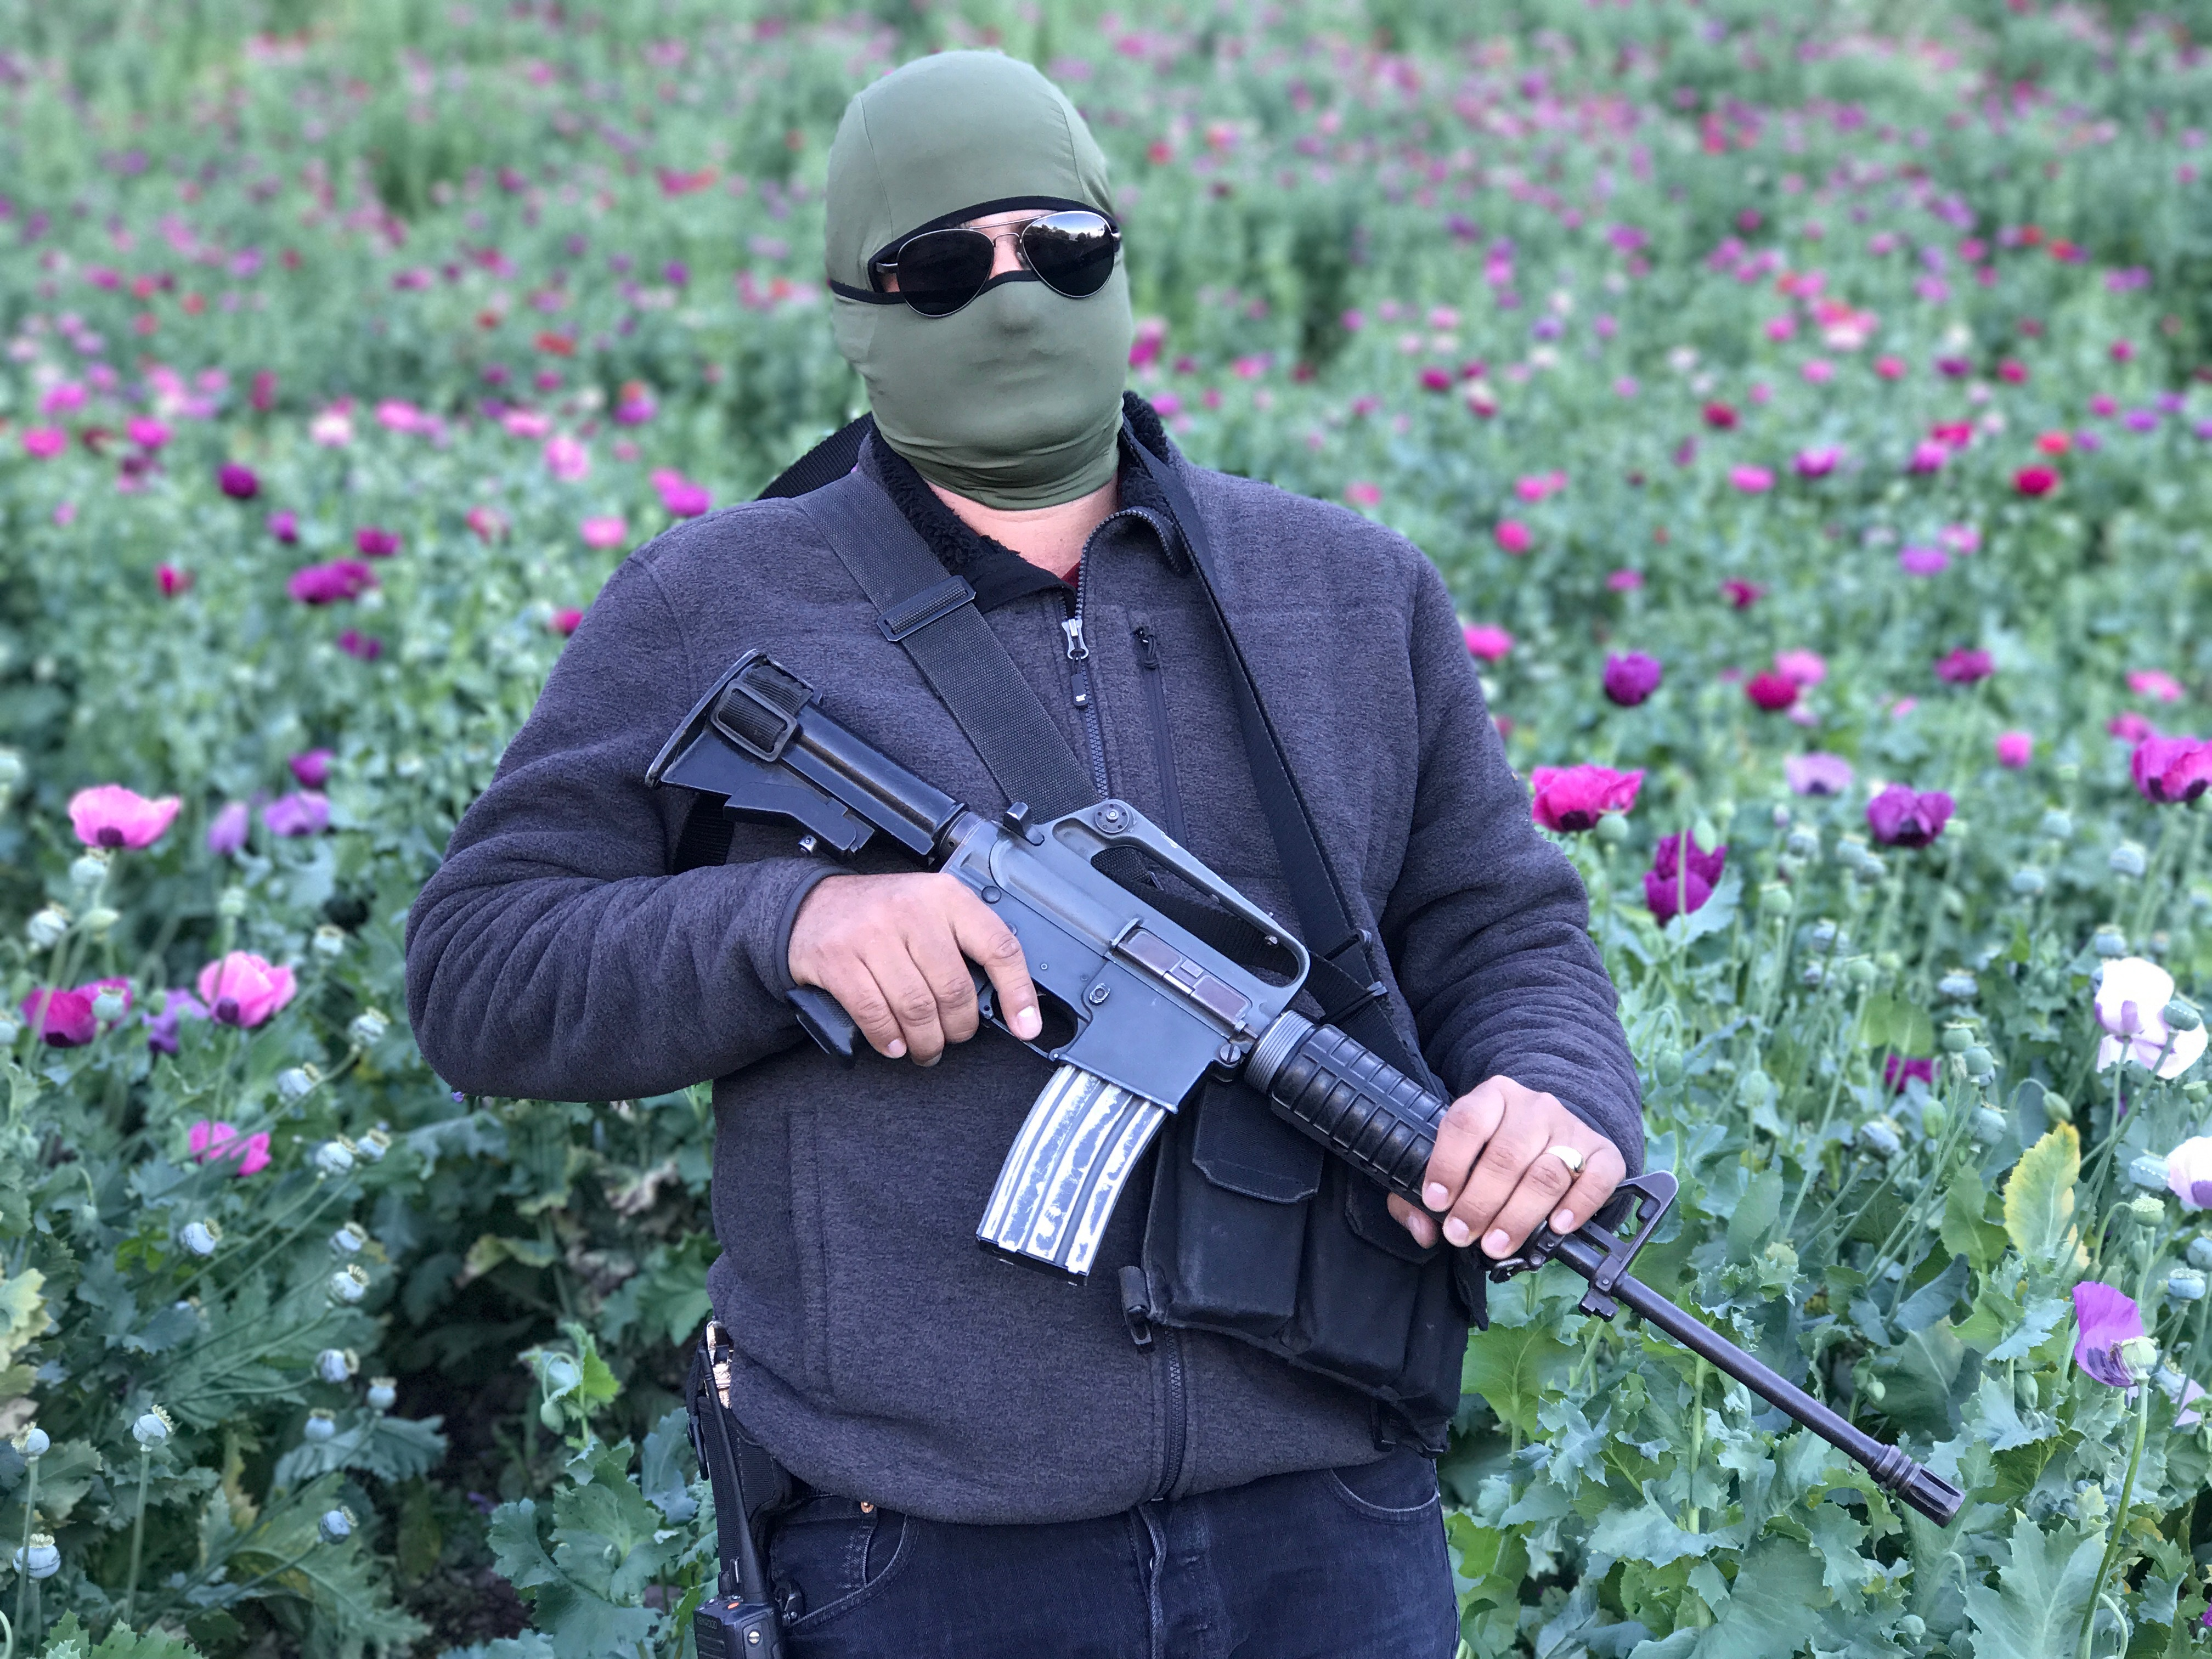 We visited a hidden poppy field the Sinaloa Cartel uses to produce